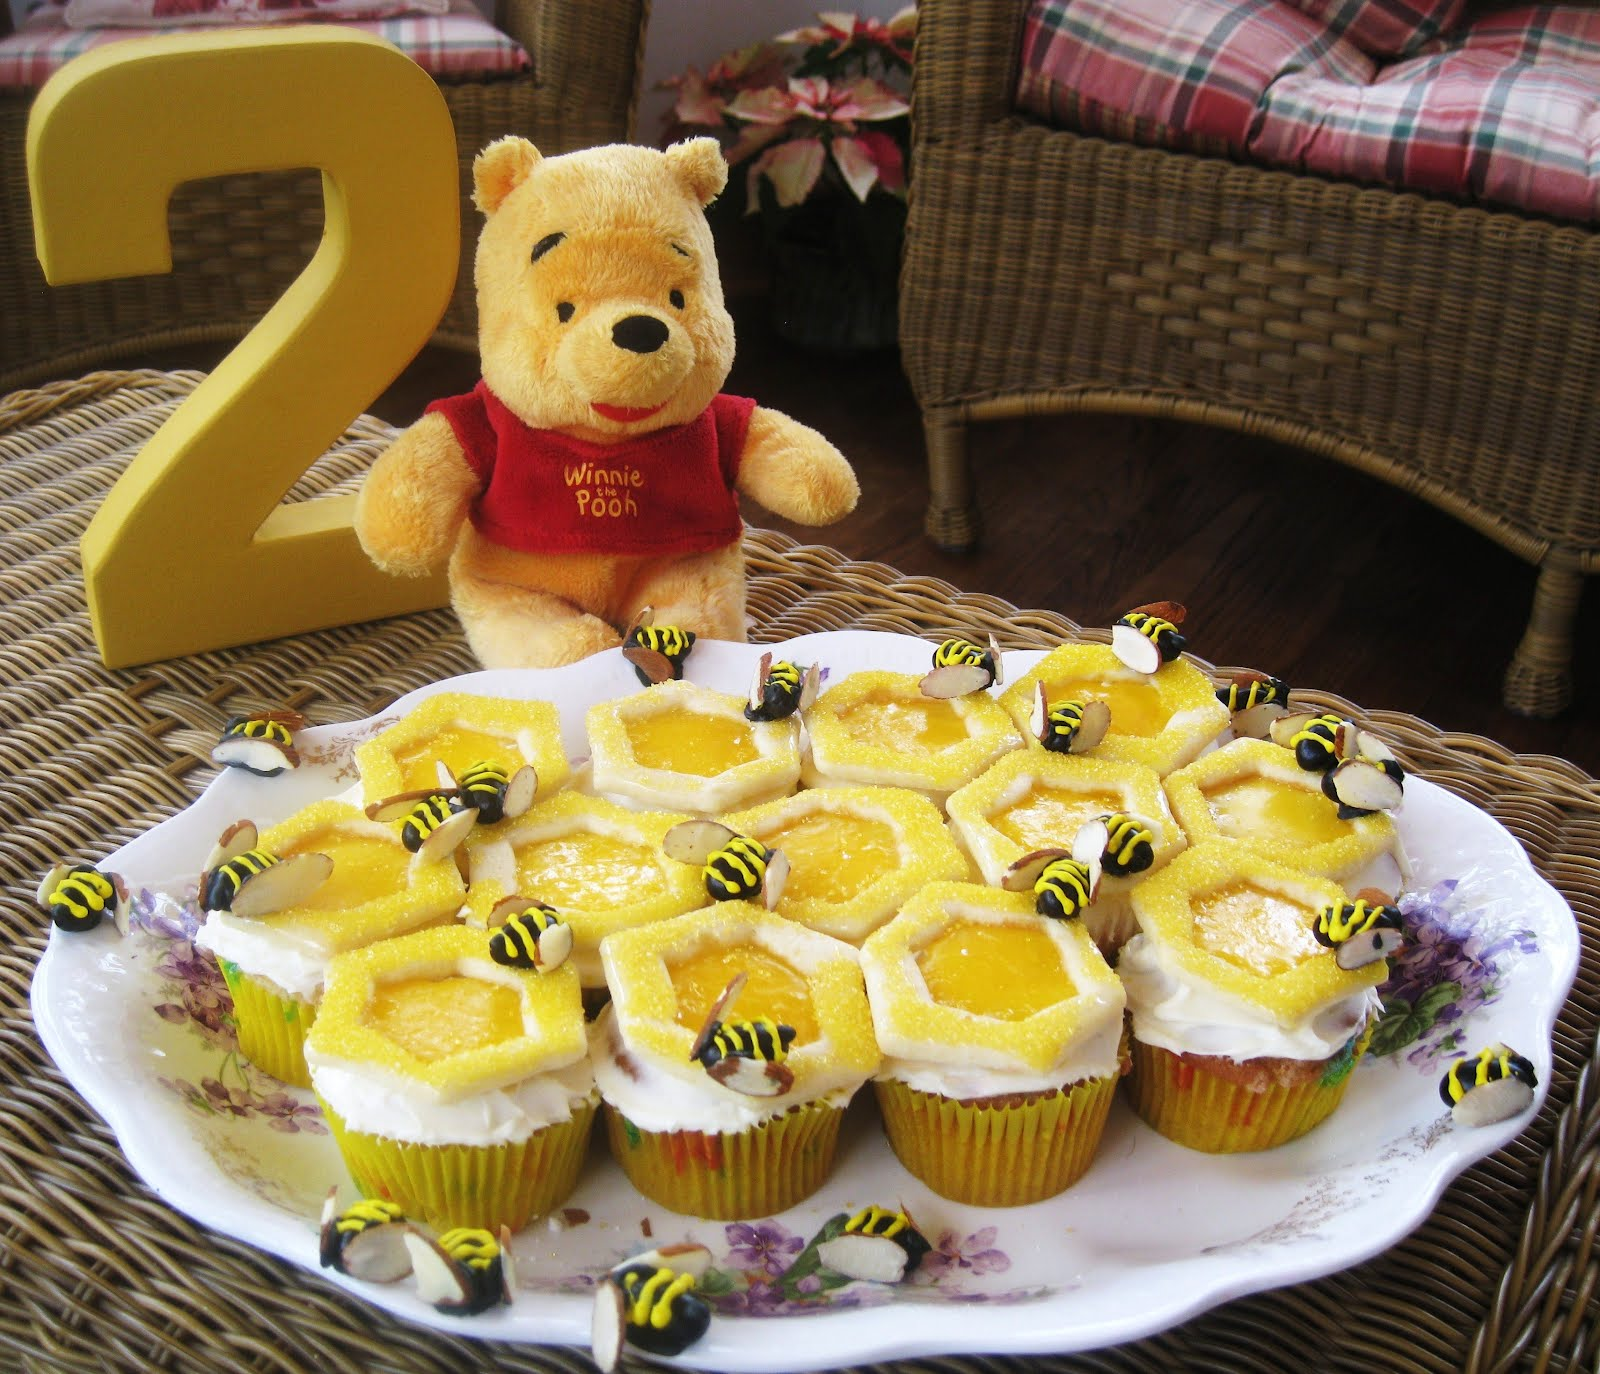 EJs Favorite Movie Winnie The Pooh And Honey Tree Was Inspiration For Her Second Birthday Party At Avias I Offered To Make Cake